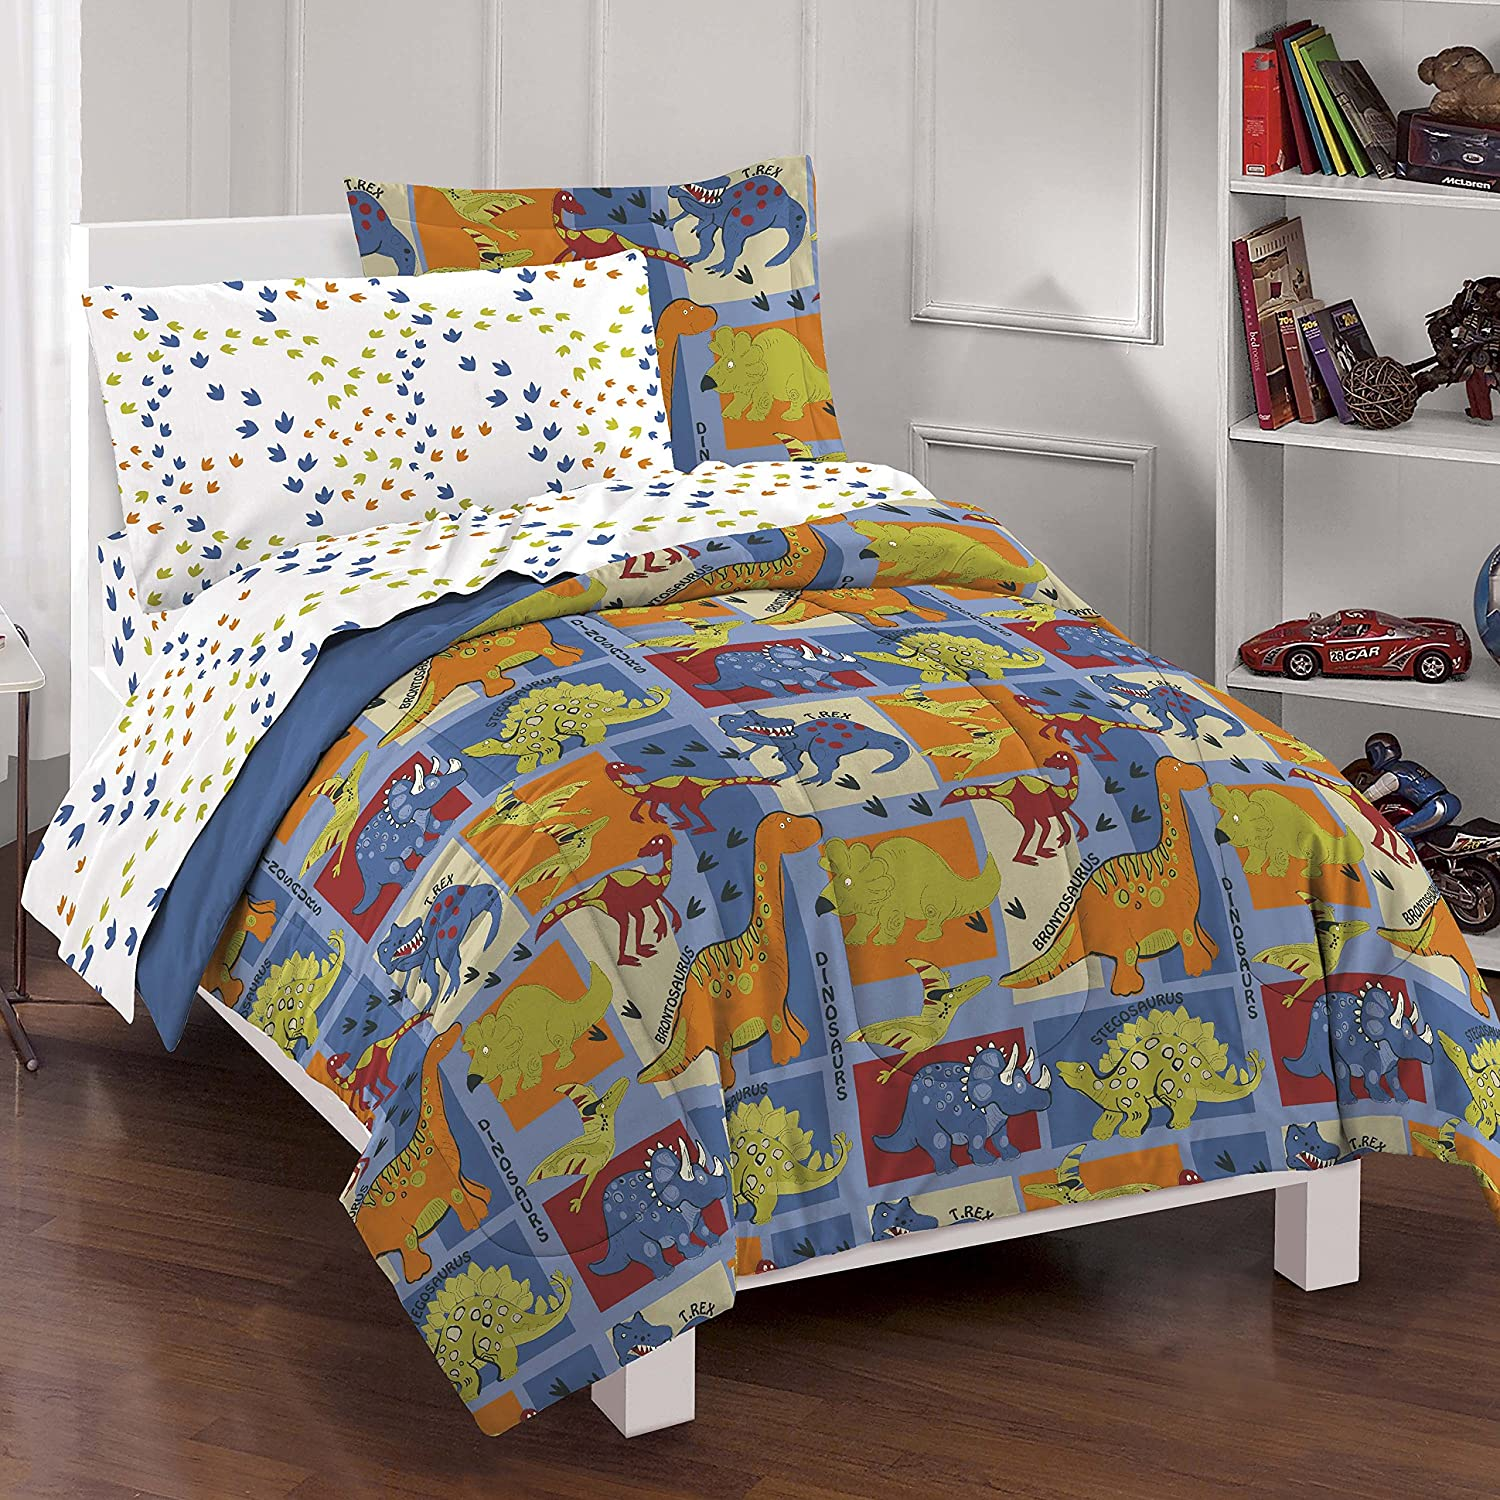 sets walmart comforter on comforters bedding home for wallpaper amazing with design gallery toddler boys